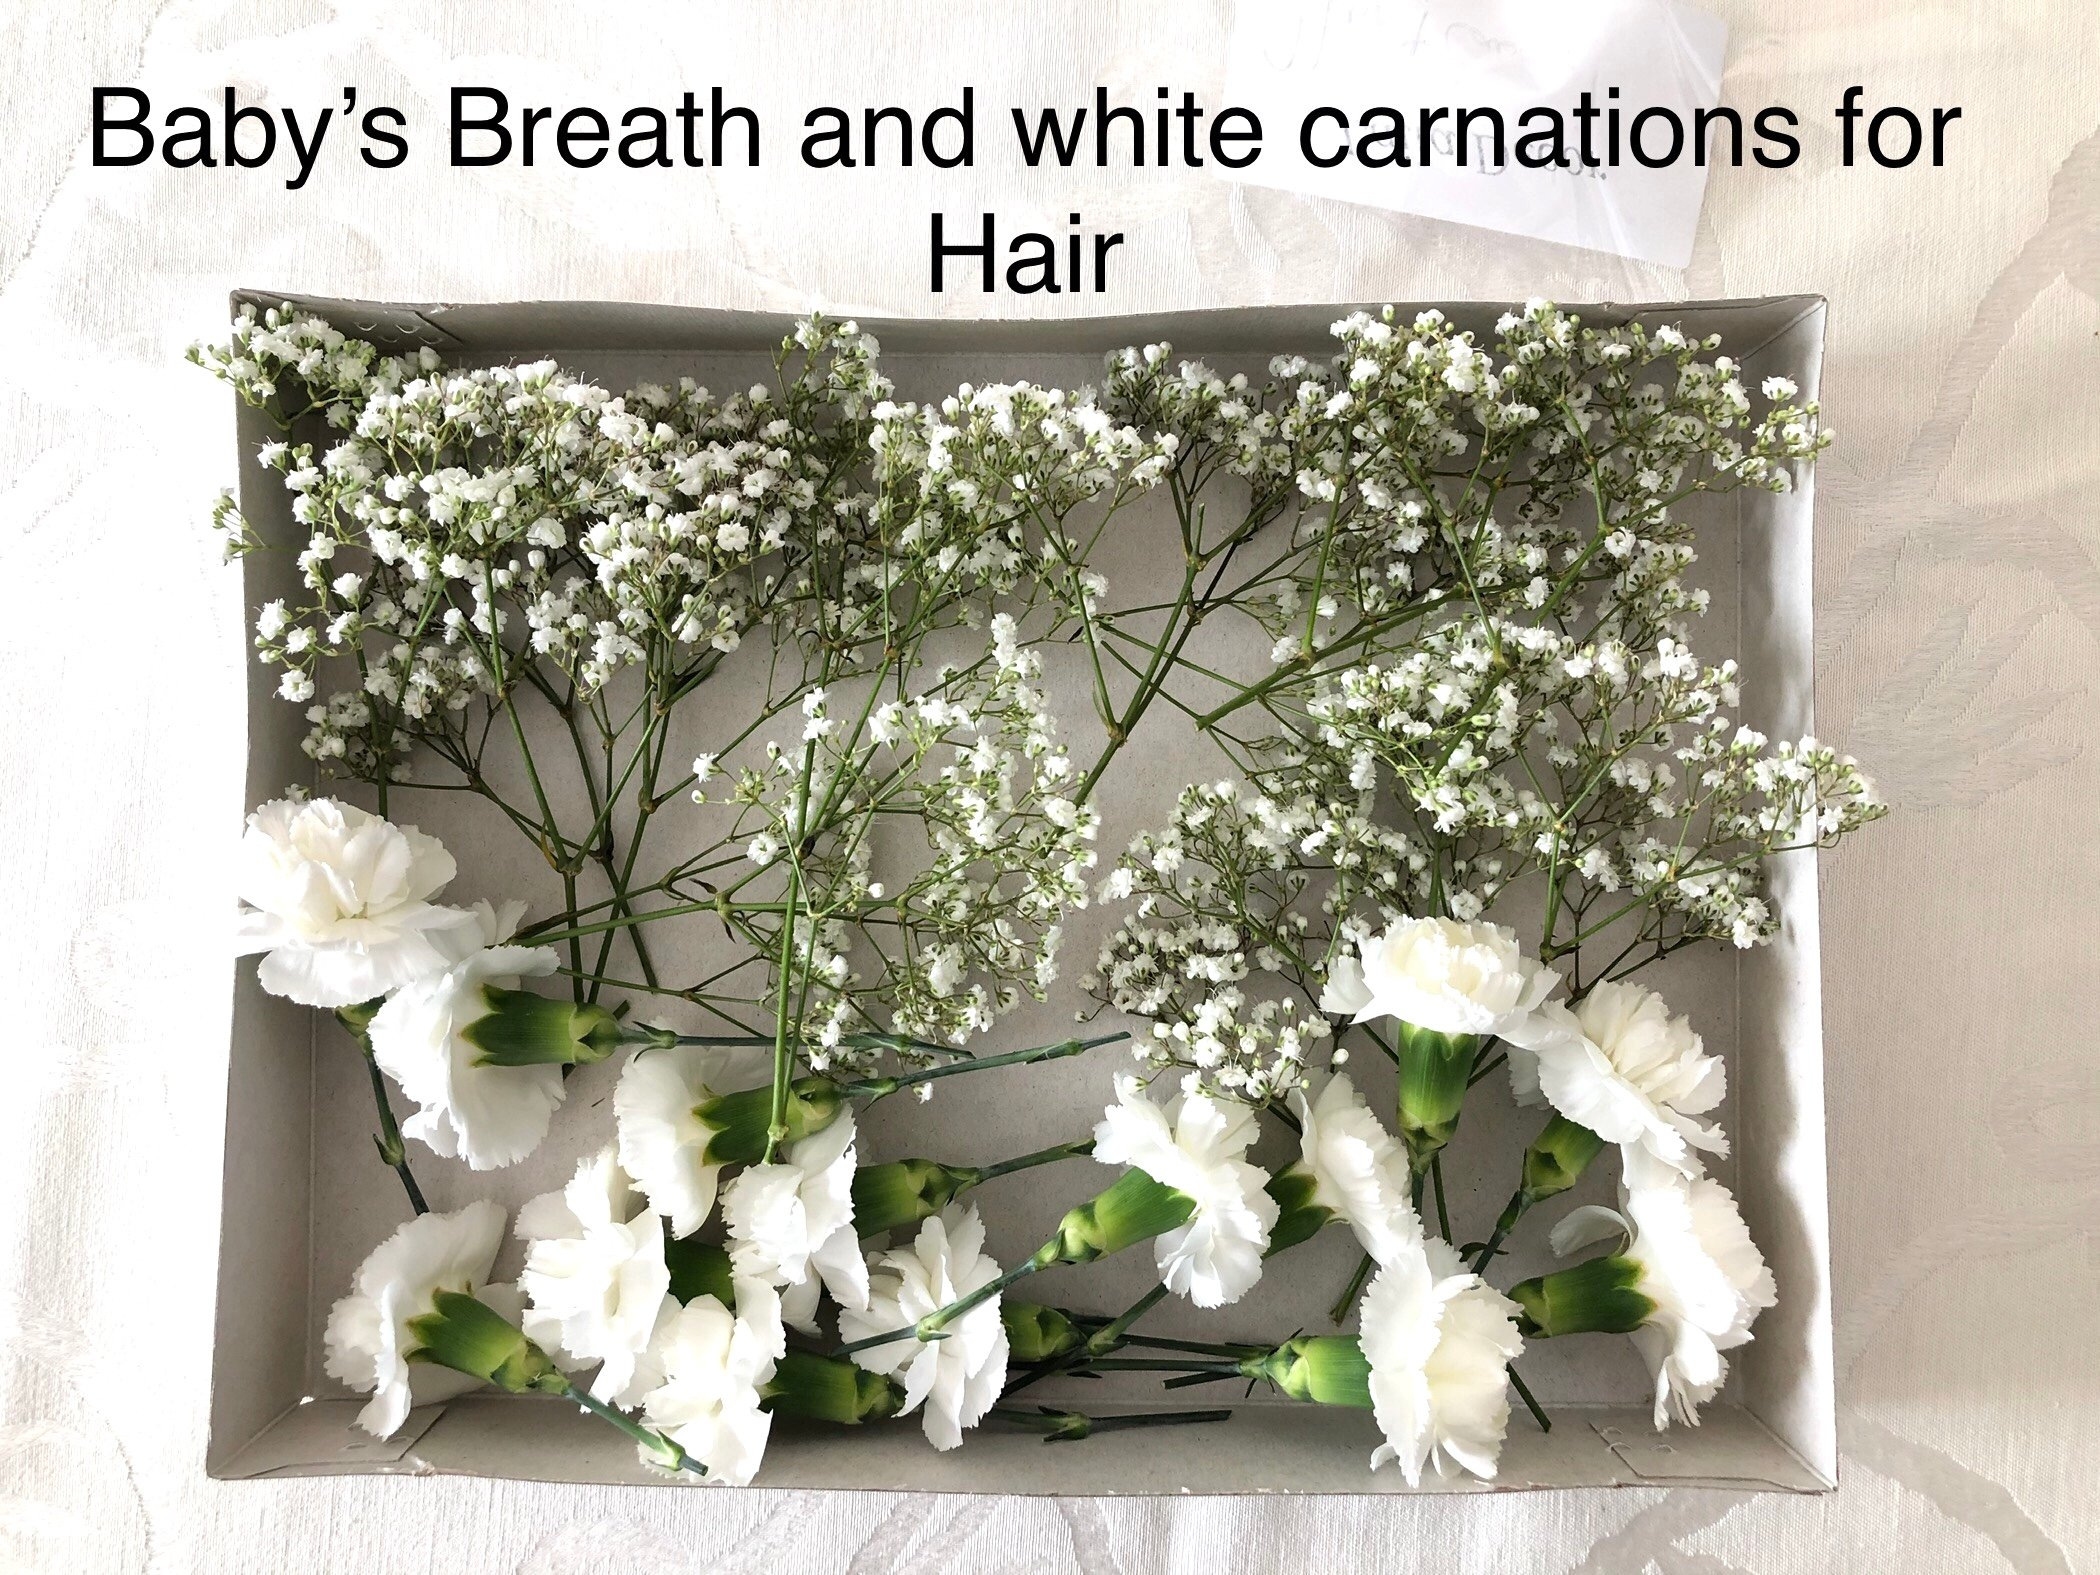 Babies breath and carnations for hair